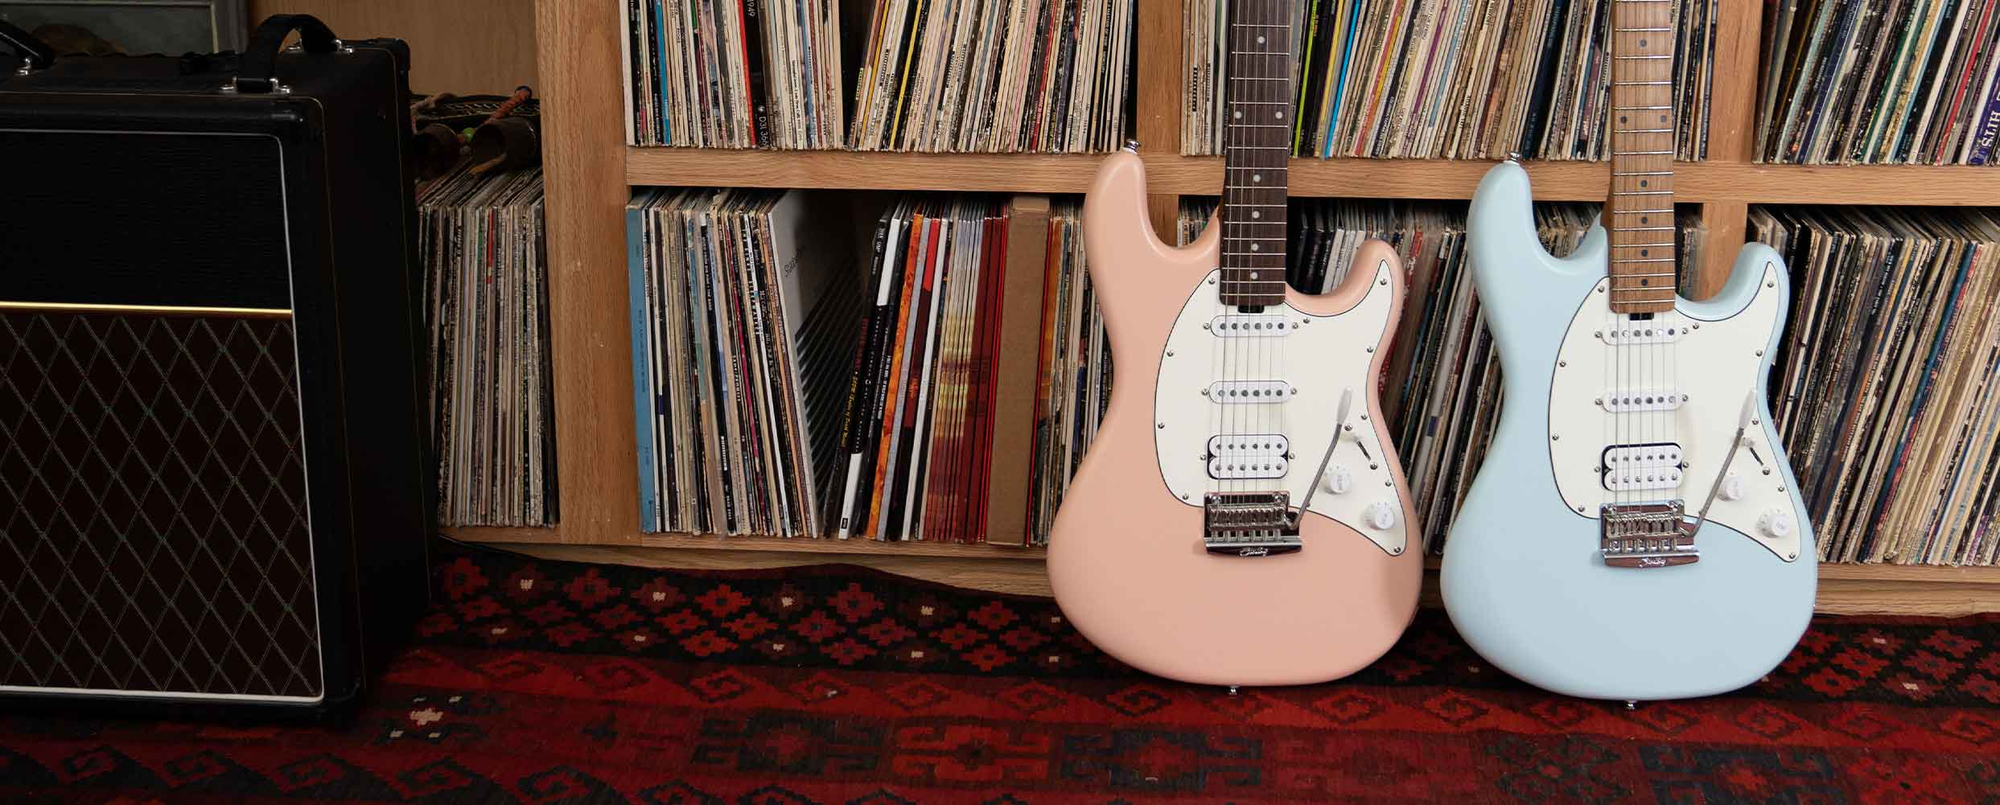 The Cutlass CT50 guitar in Vintage Sunburst resting against a vintage amps.